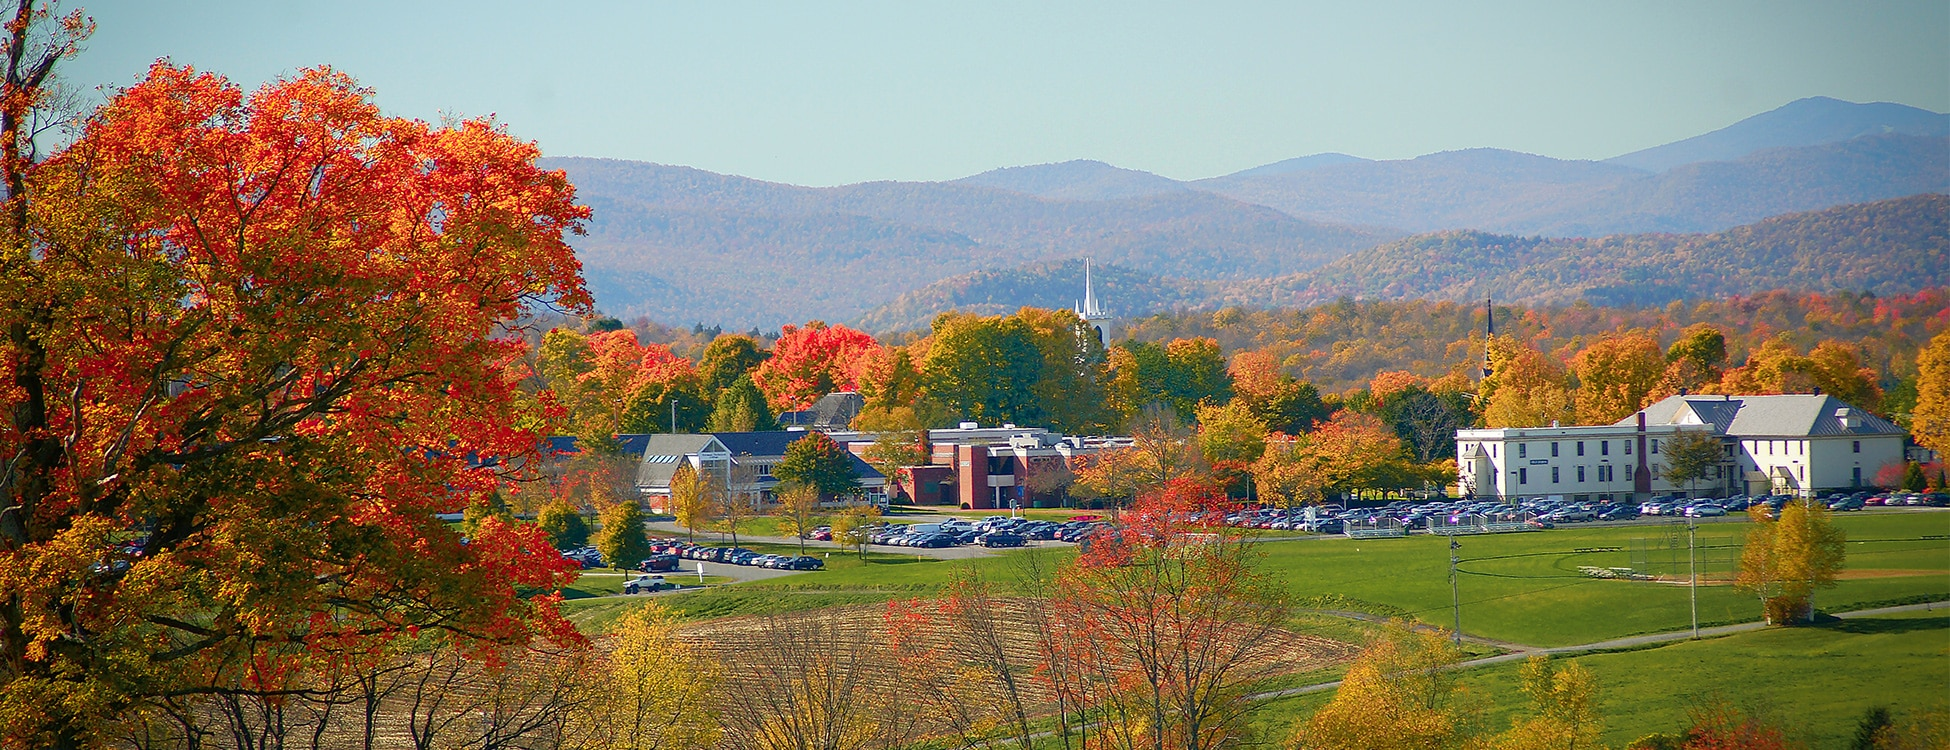 Vermont Tech Randolph Center campus, landscape, autumn leaves, beautiful, mountains, landscape